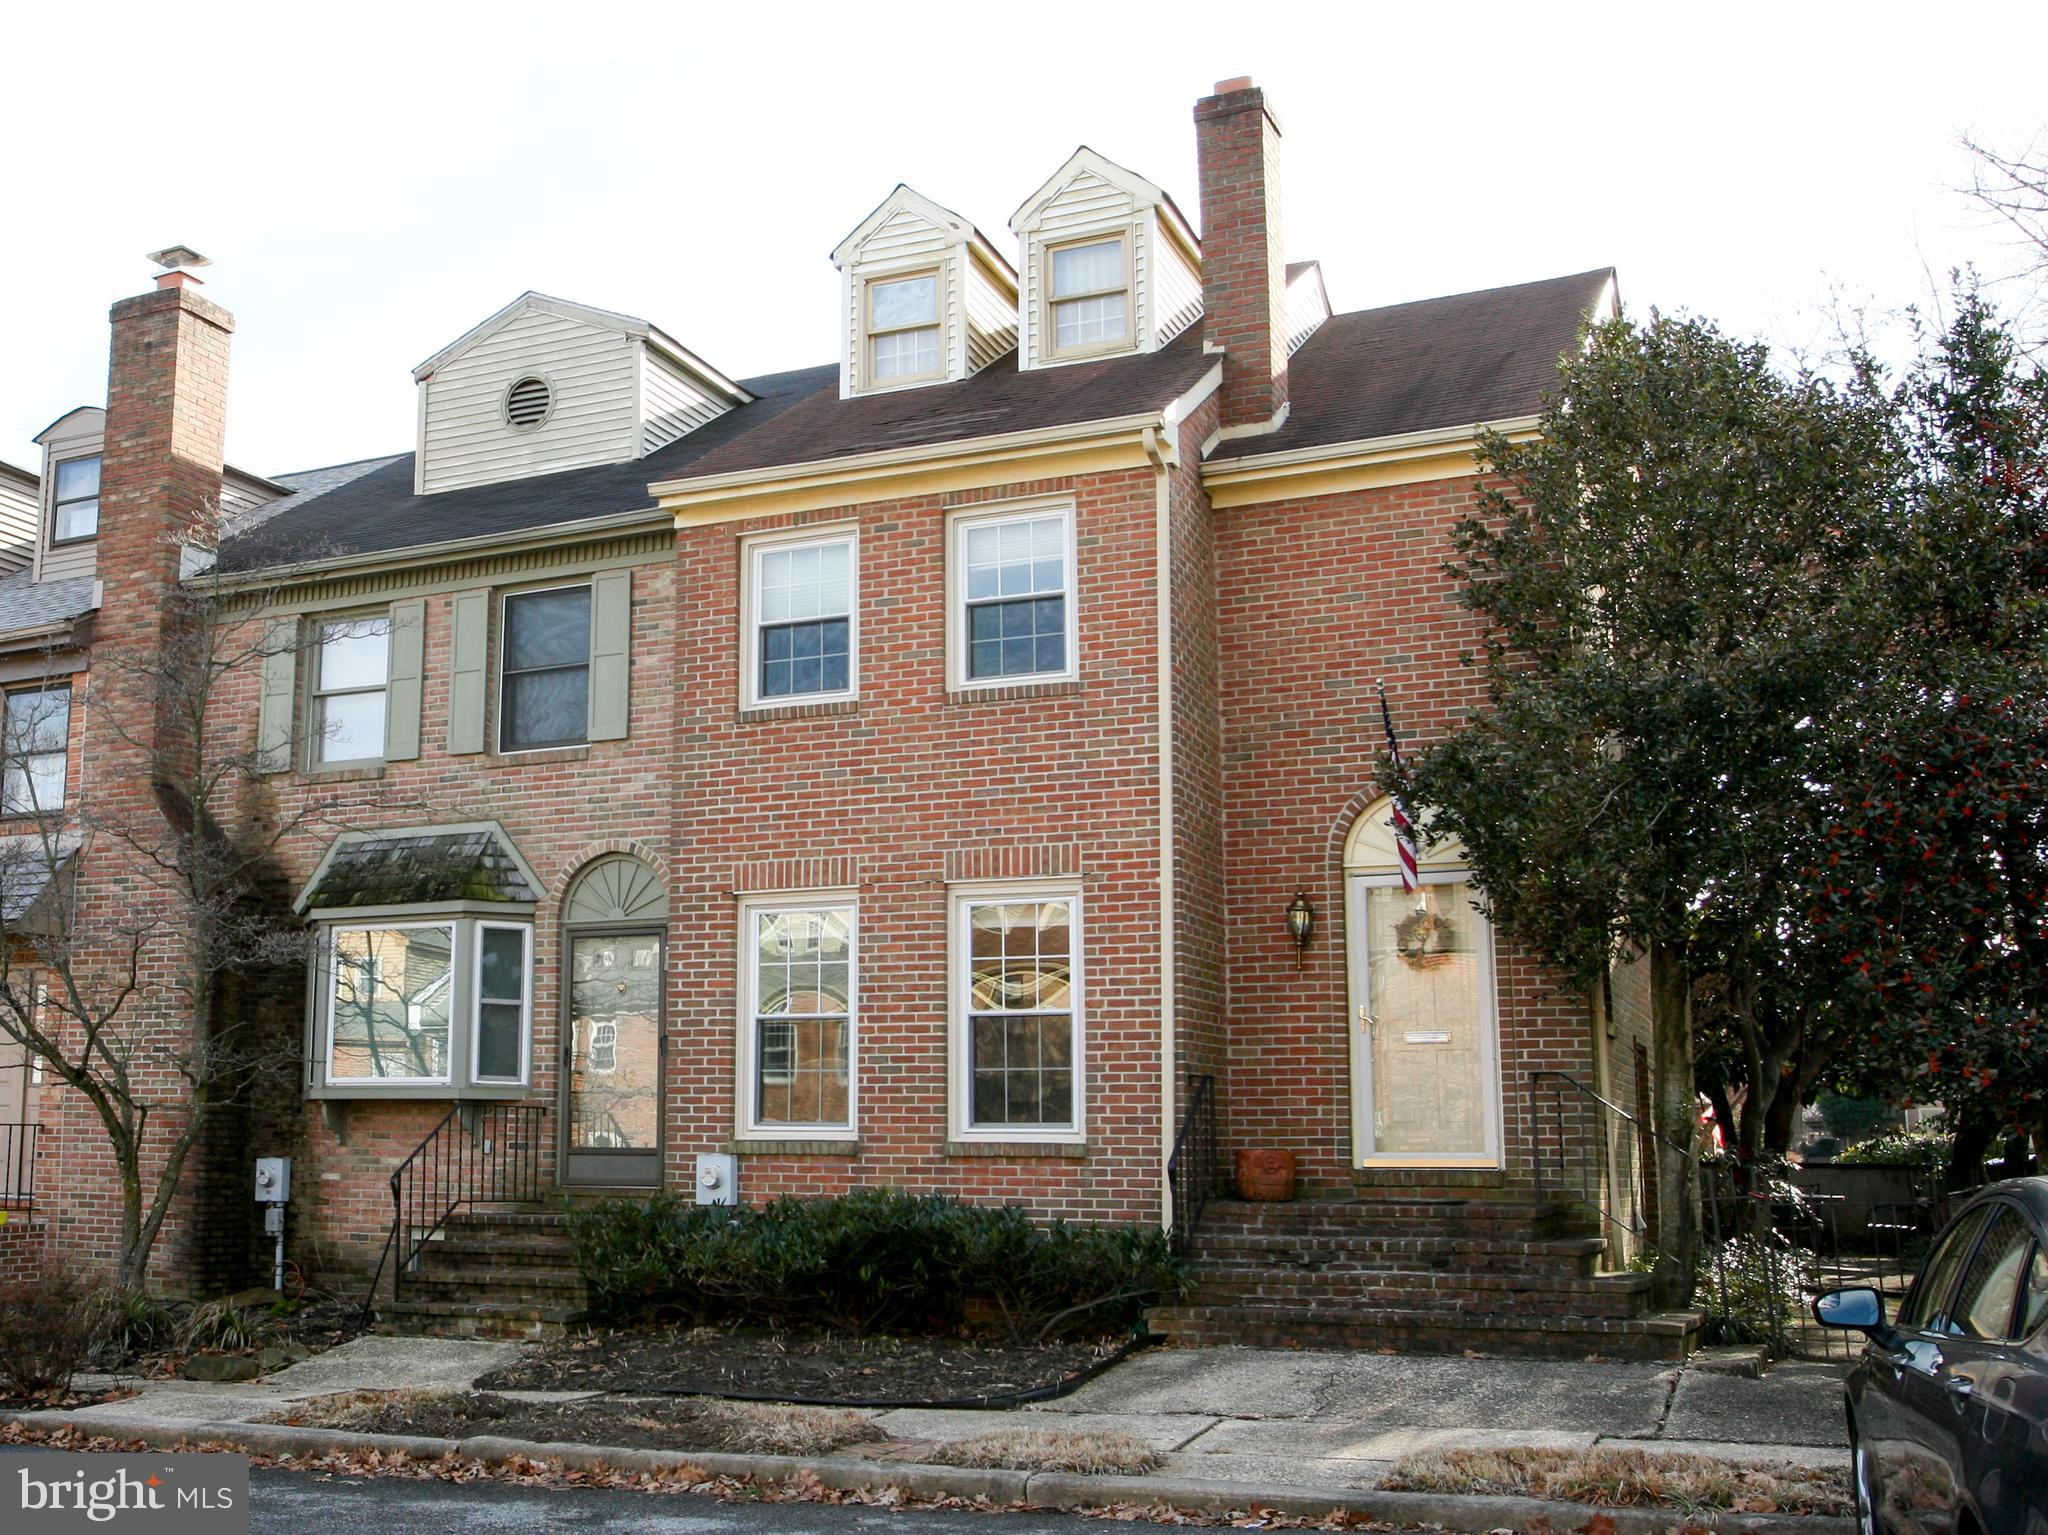 2114 FAIRFIELD PLACE, WILMINGTON, DE 19805